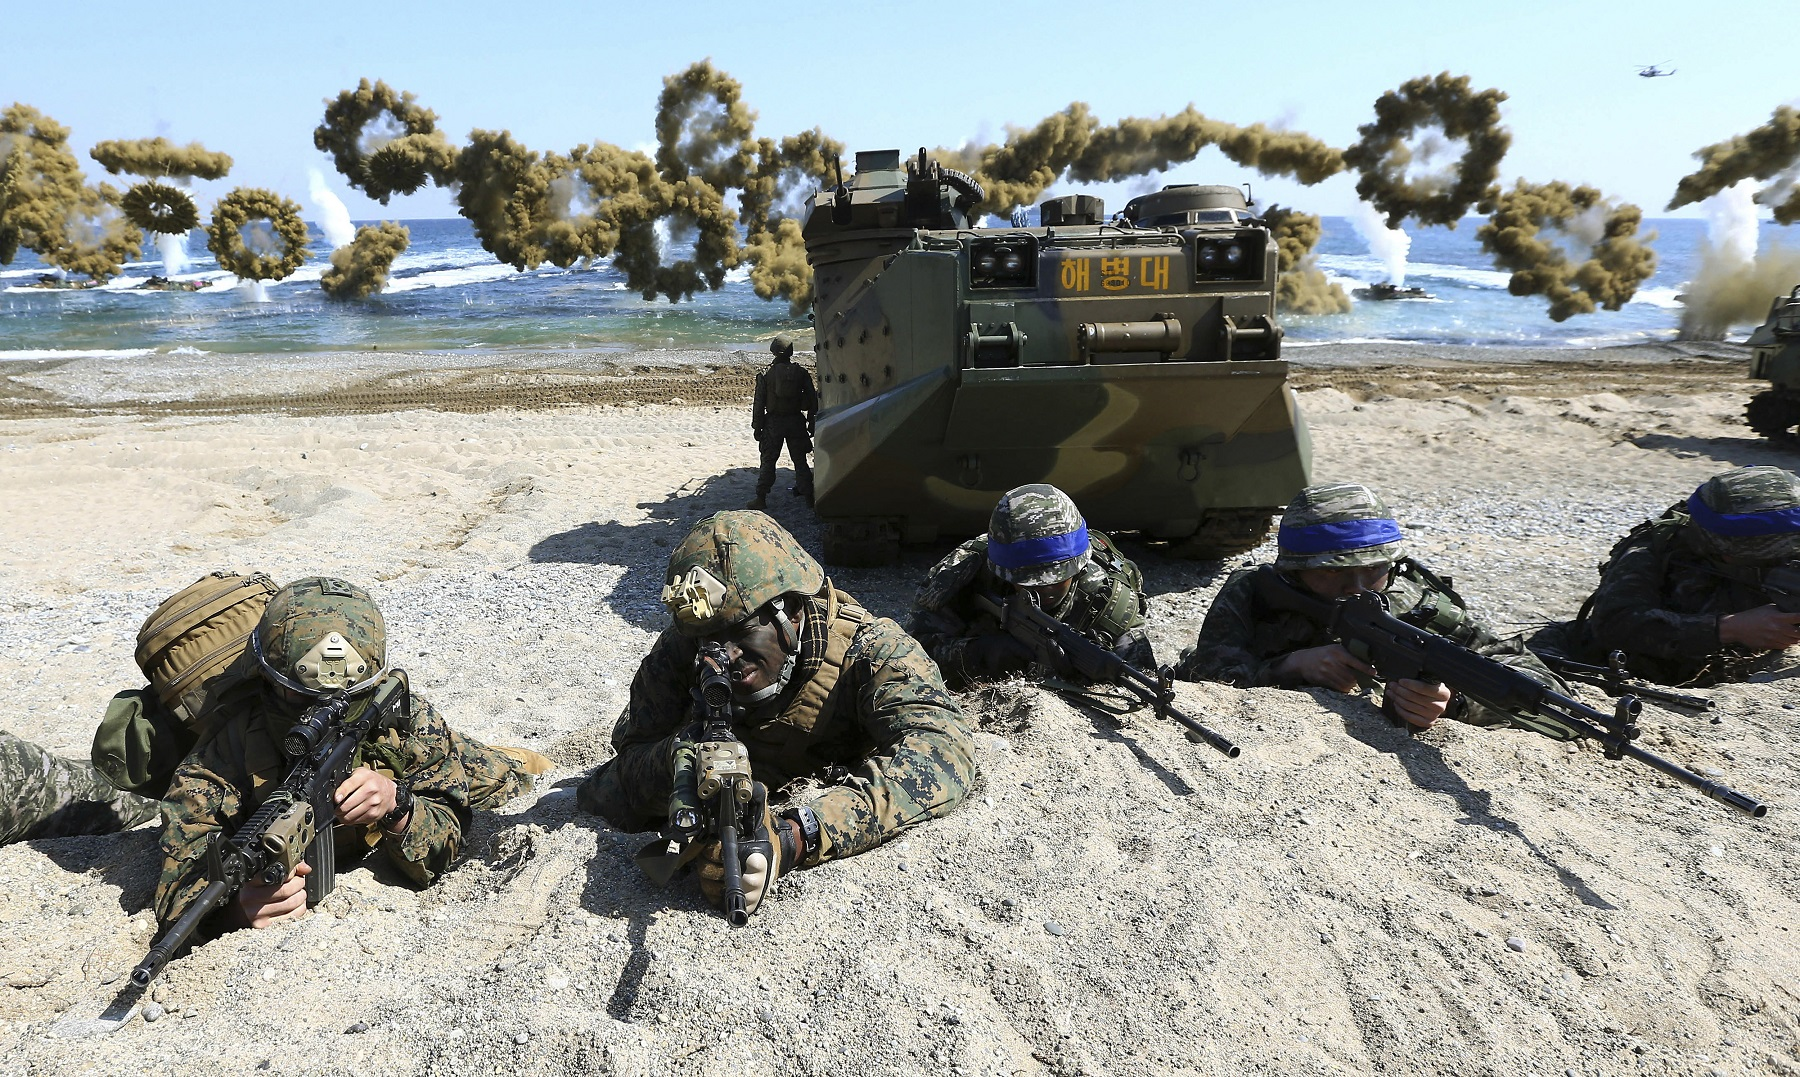 Troops see need for more forces in Korea, eastern Europe